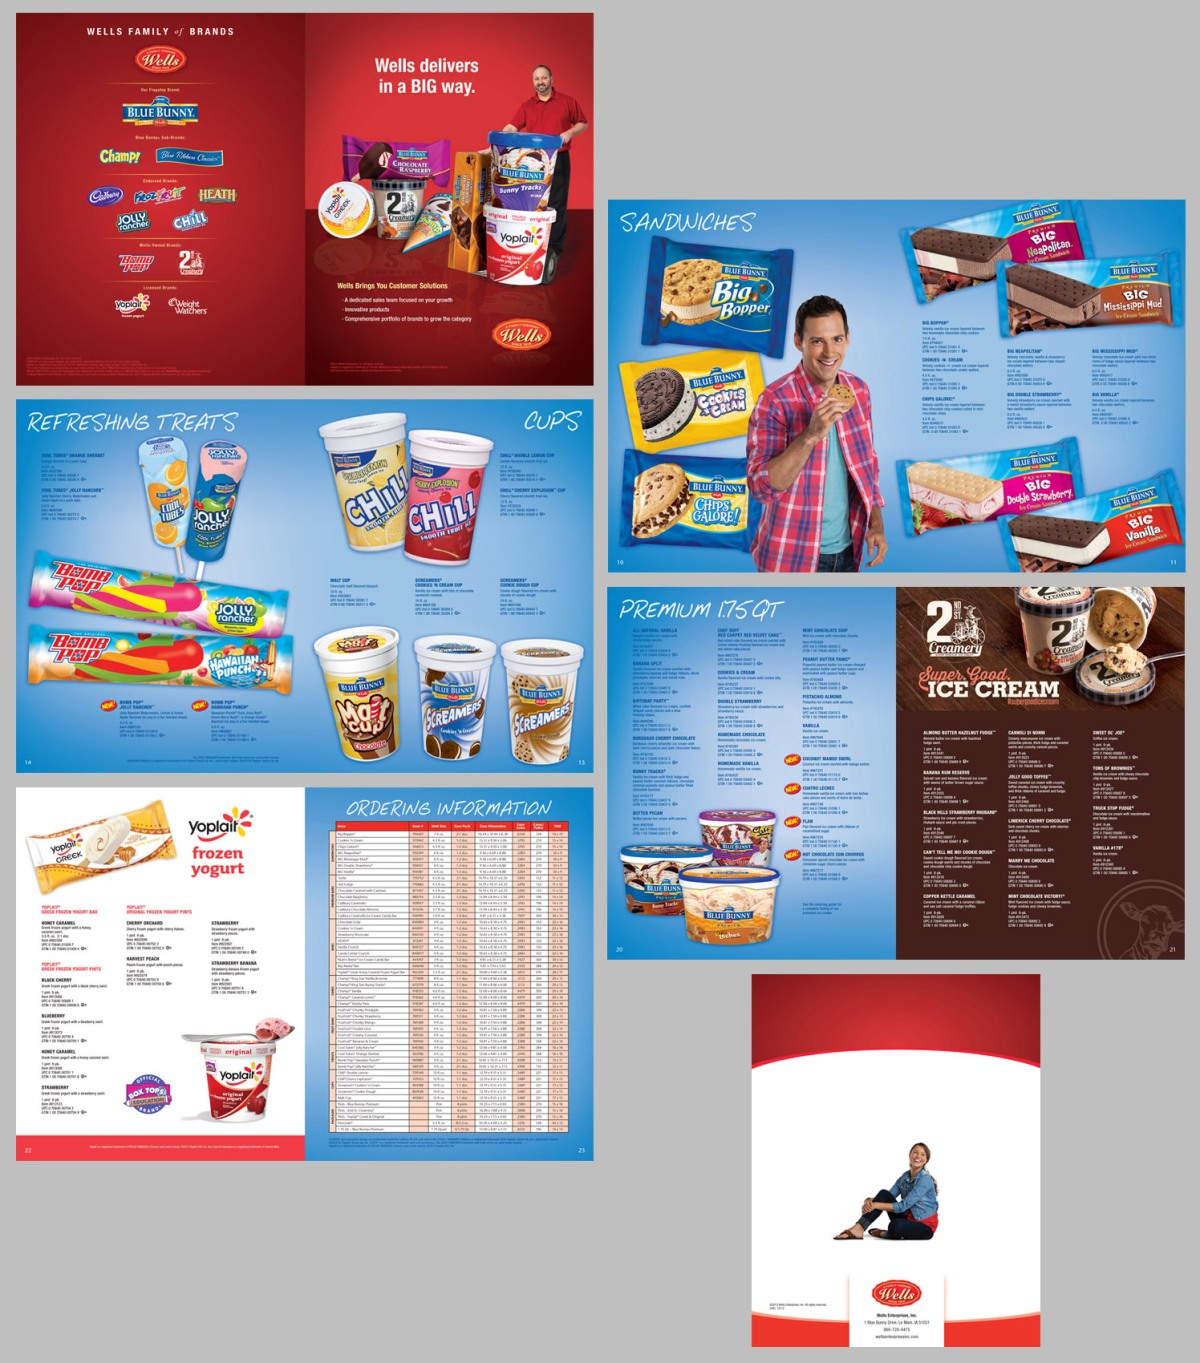 2014 CS Product Guide_montage_1496x1700